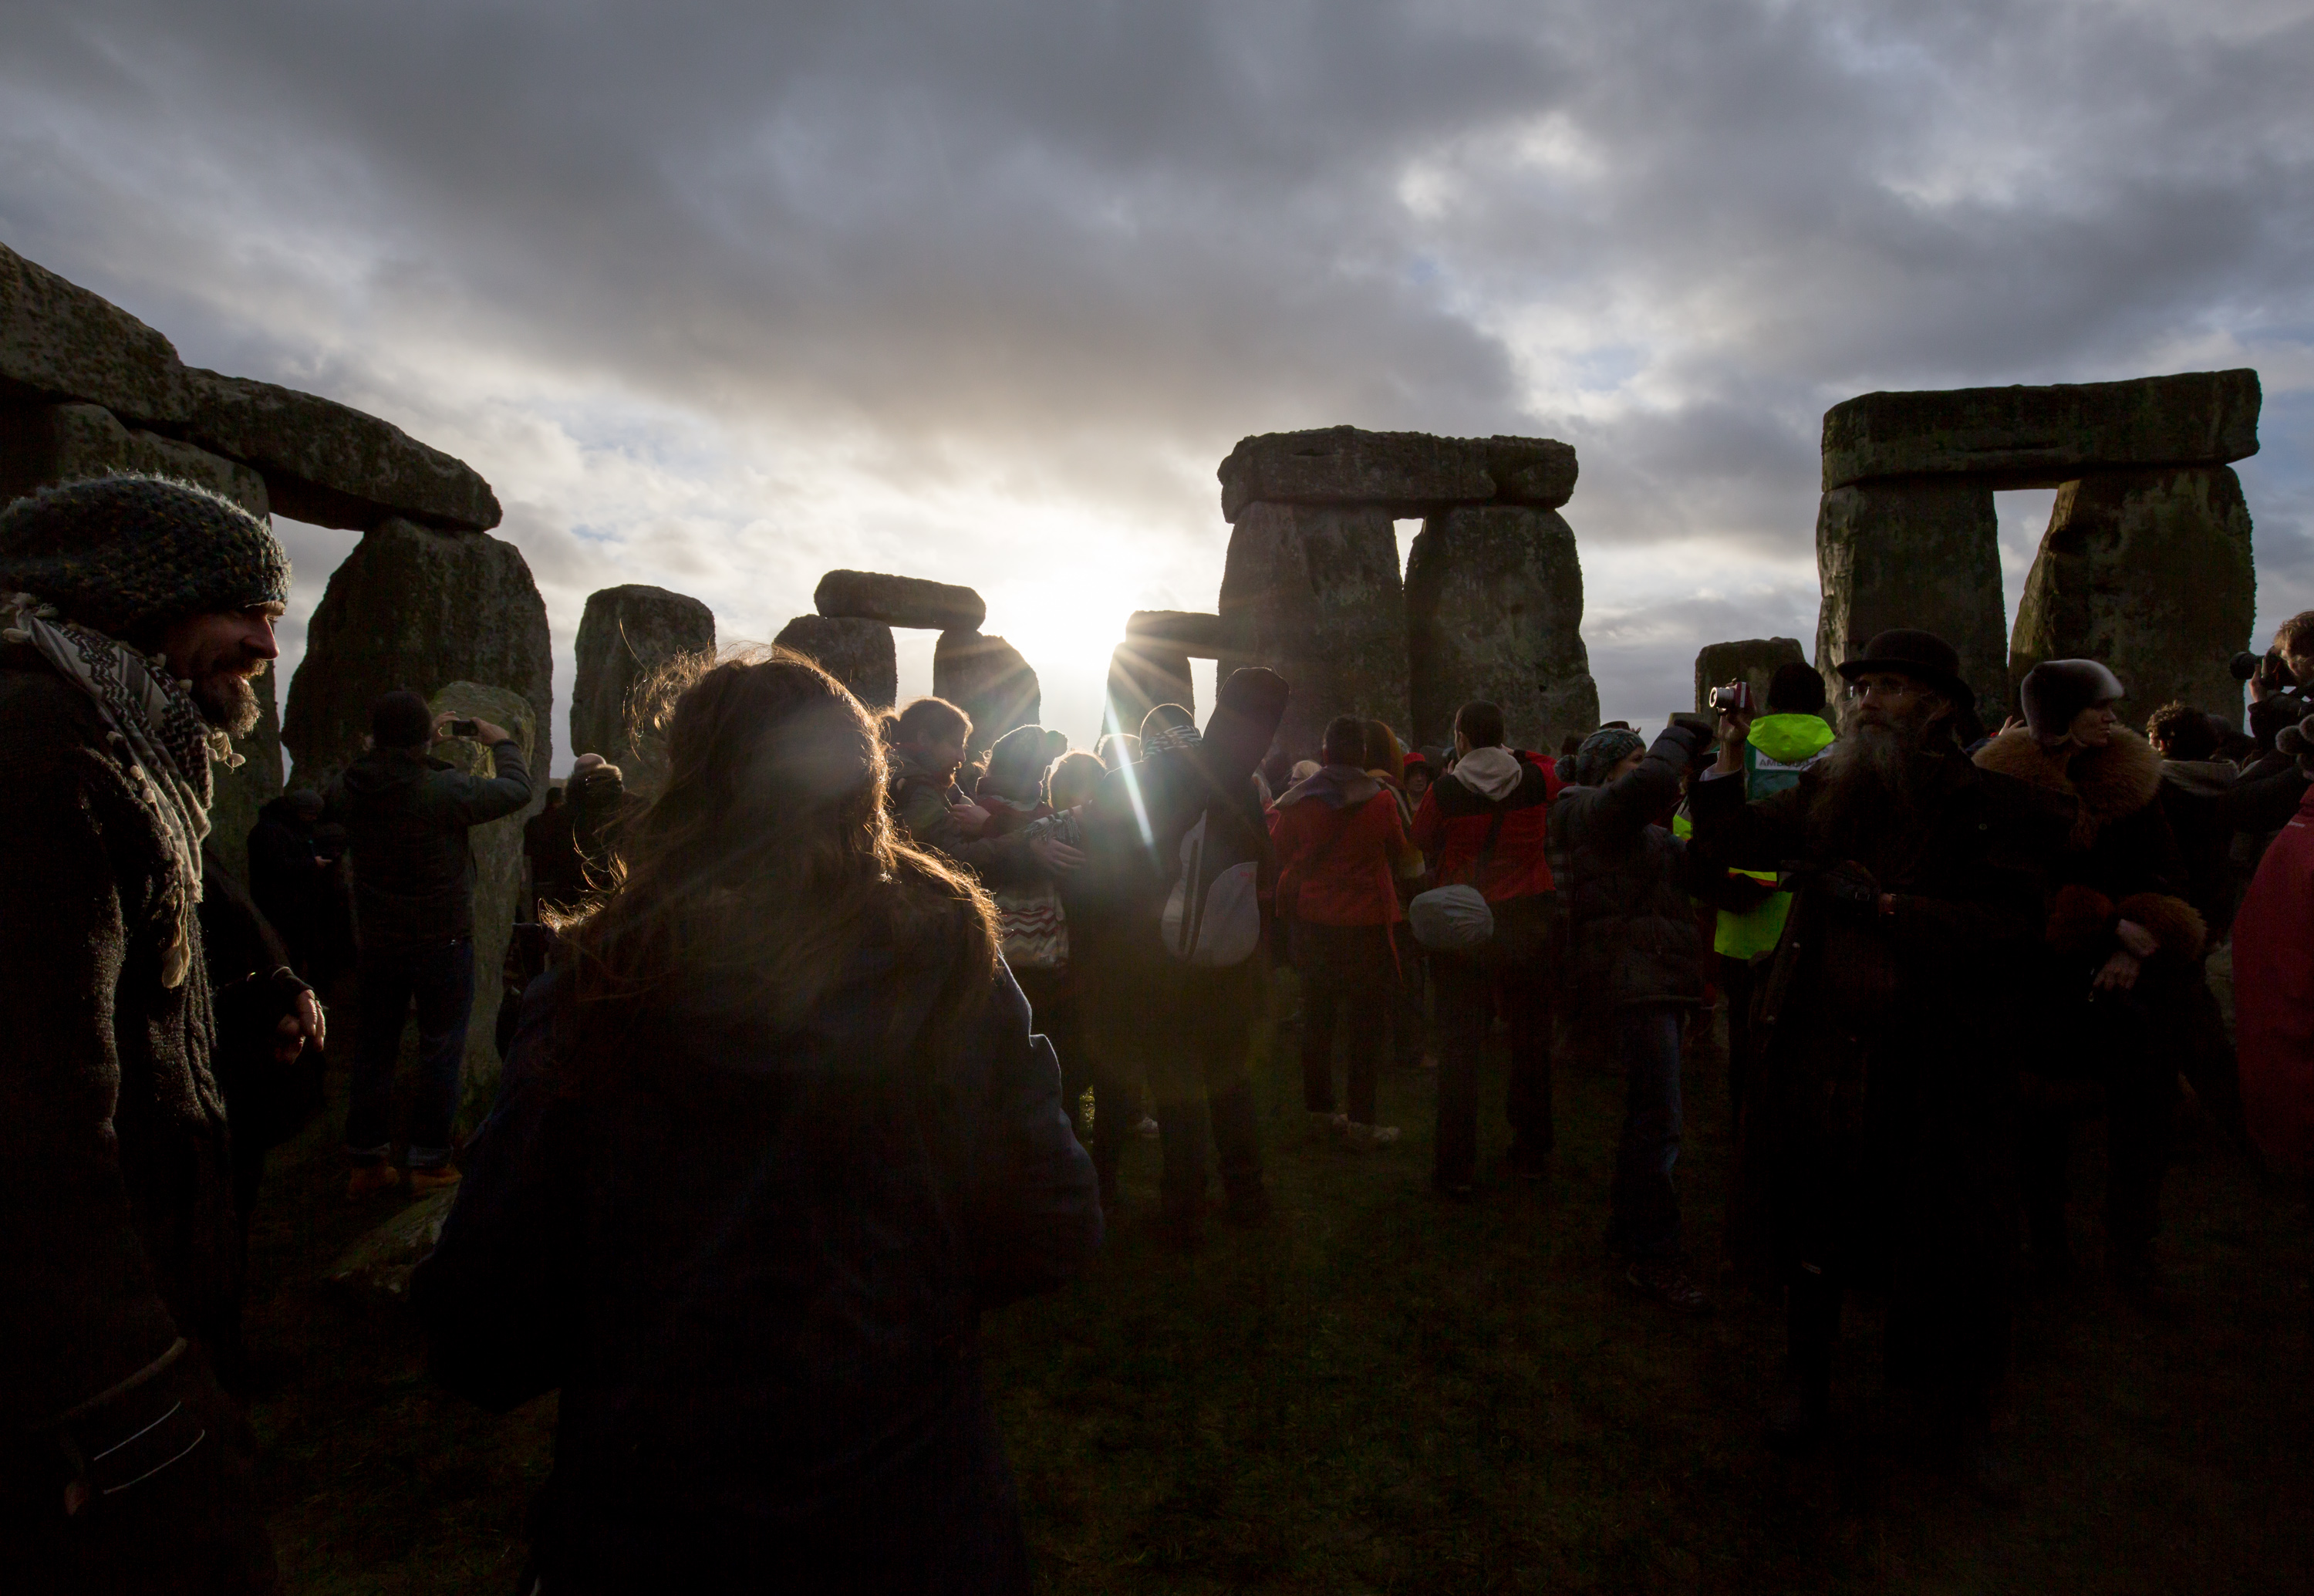 The sun makes a brief appearance through clouds as druids, pagans and revelers gather in the centre of Stonehenge in Wiltshire, England for the 2015 winter solstice.